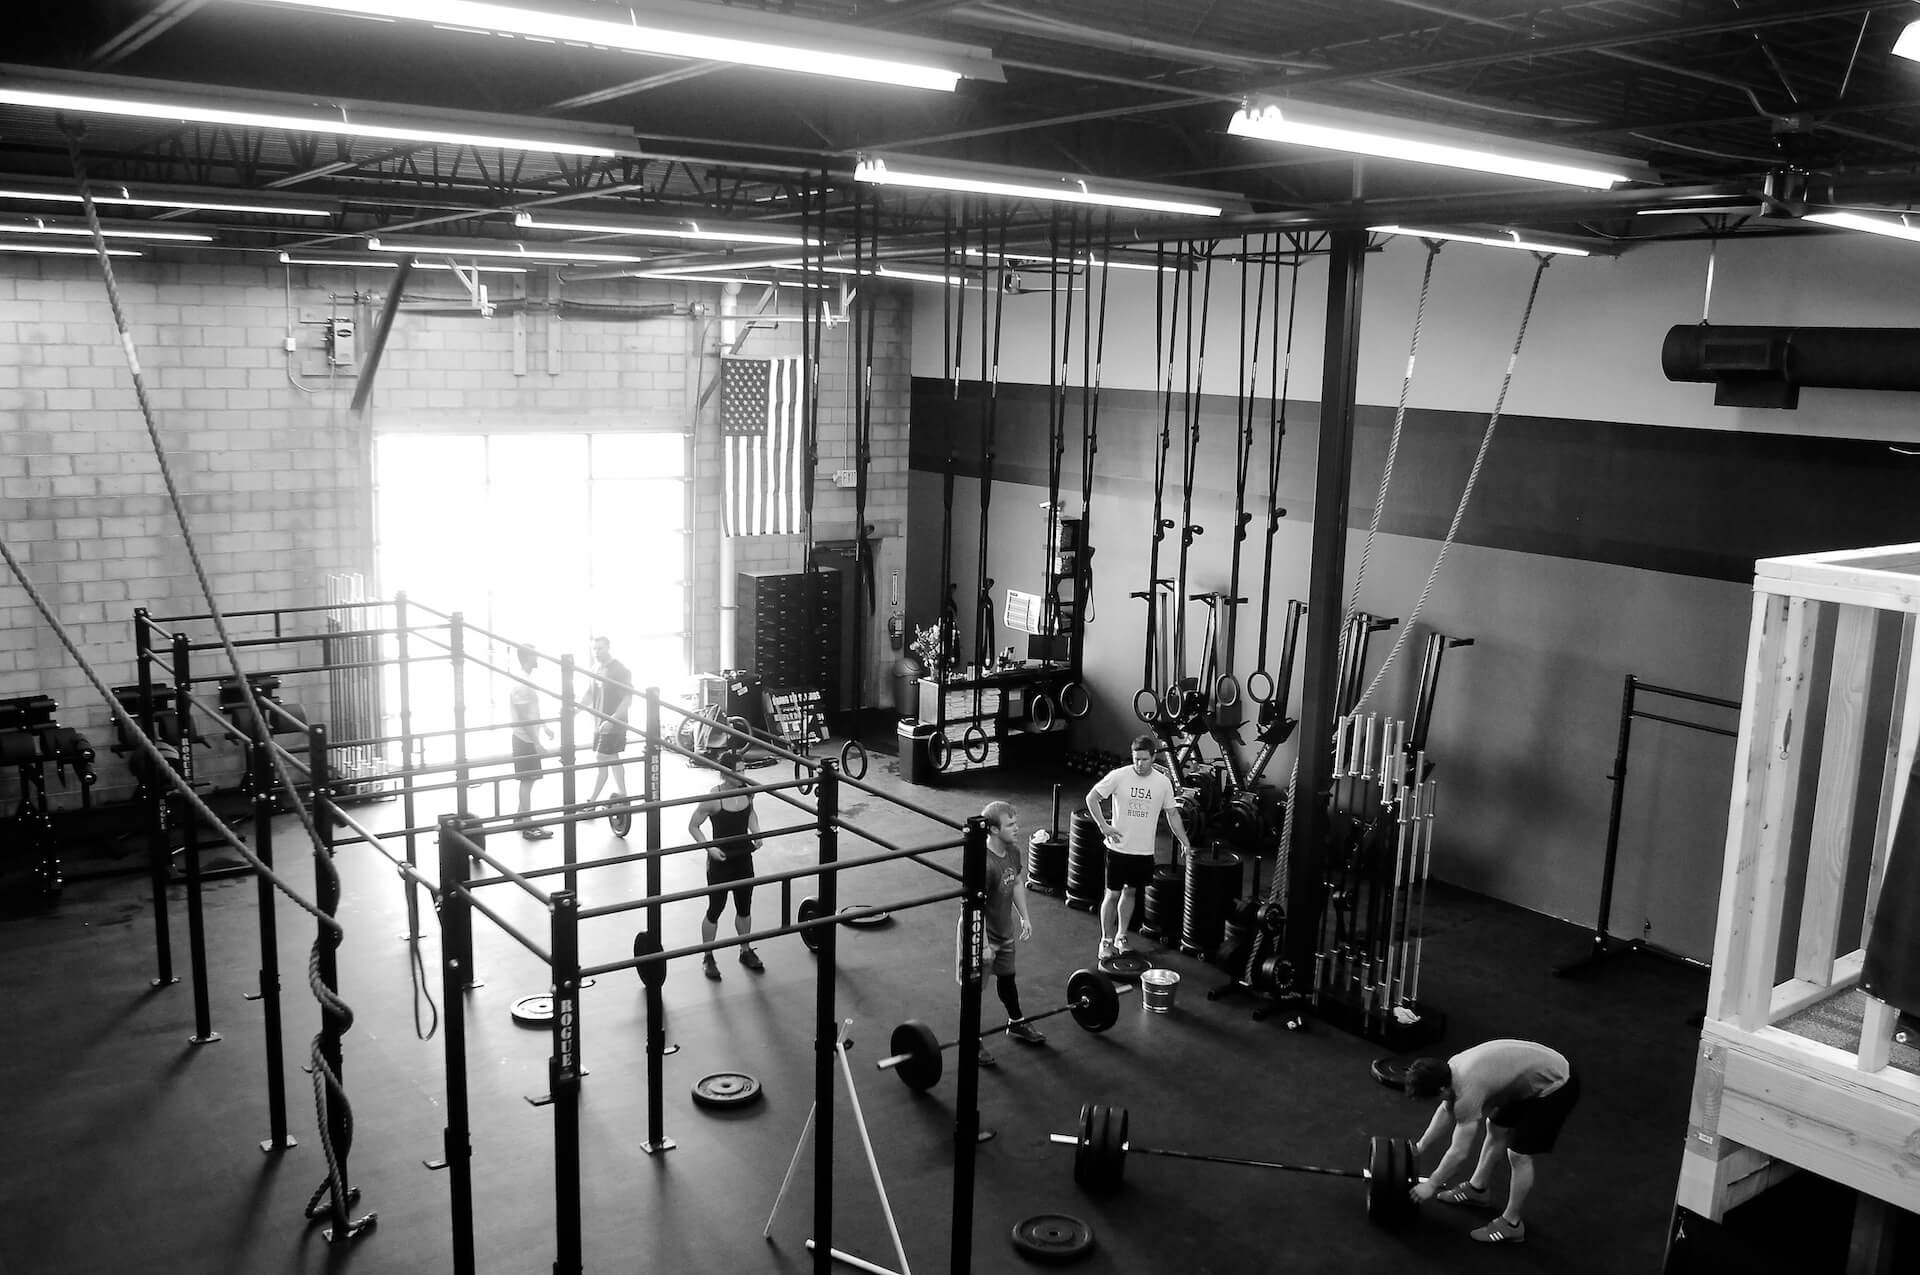 an image of the our crossfit gym interior